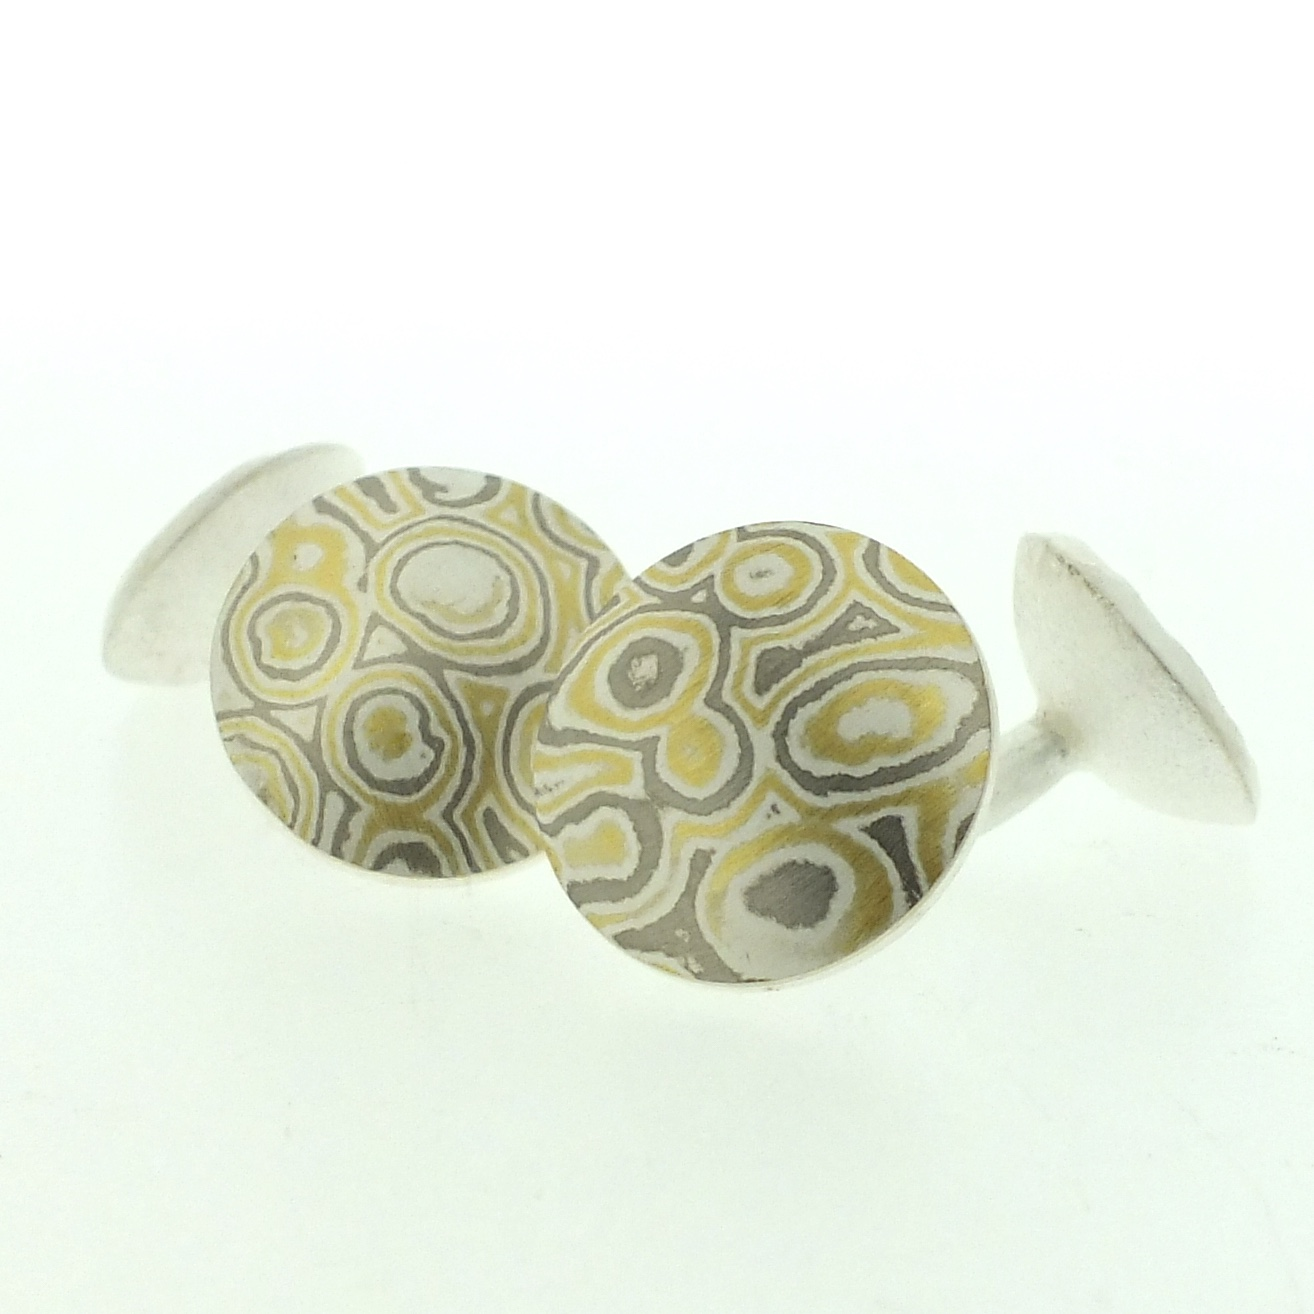 22k gold, 18k white gold and silver mokume gane domed discus cufflinks